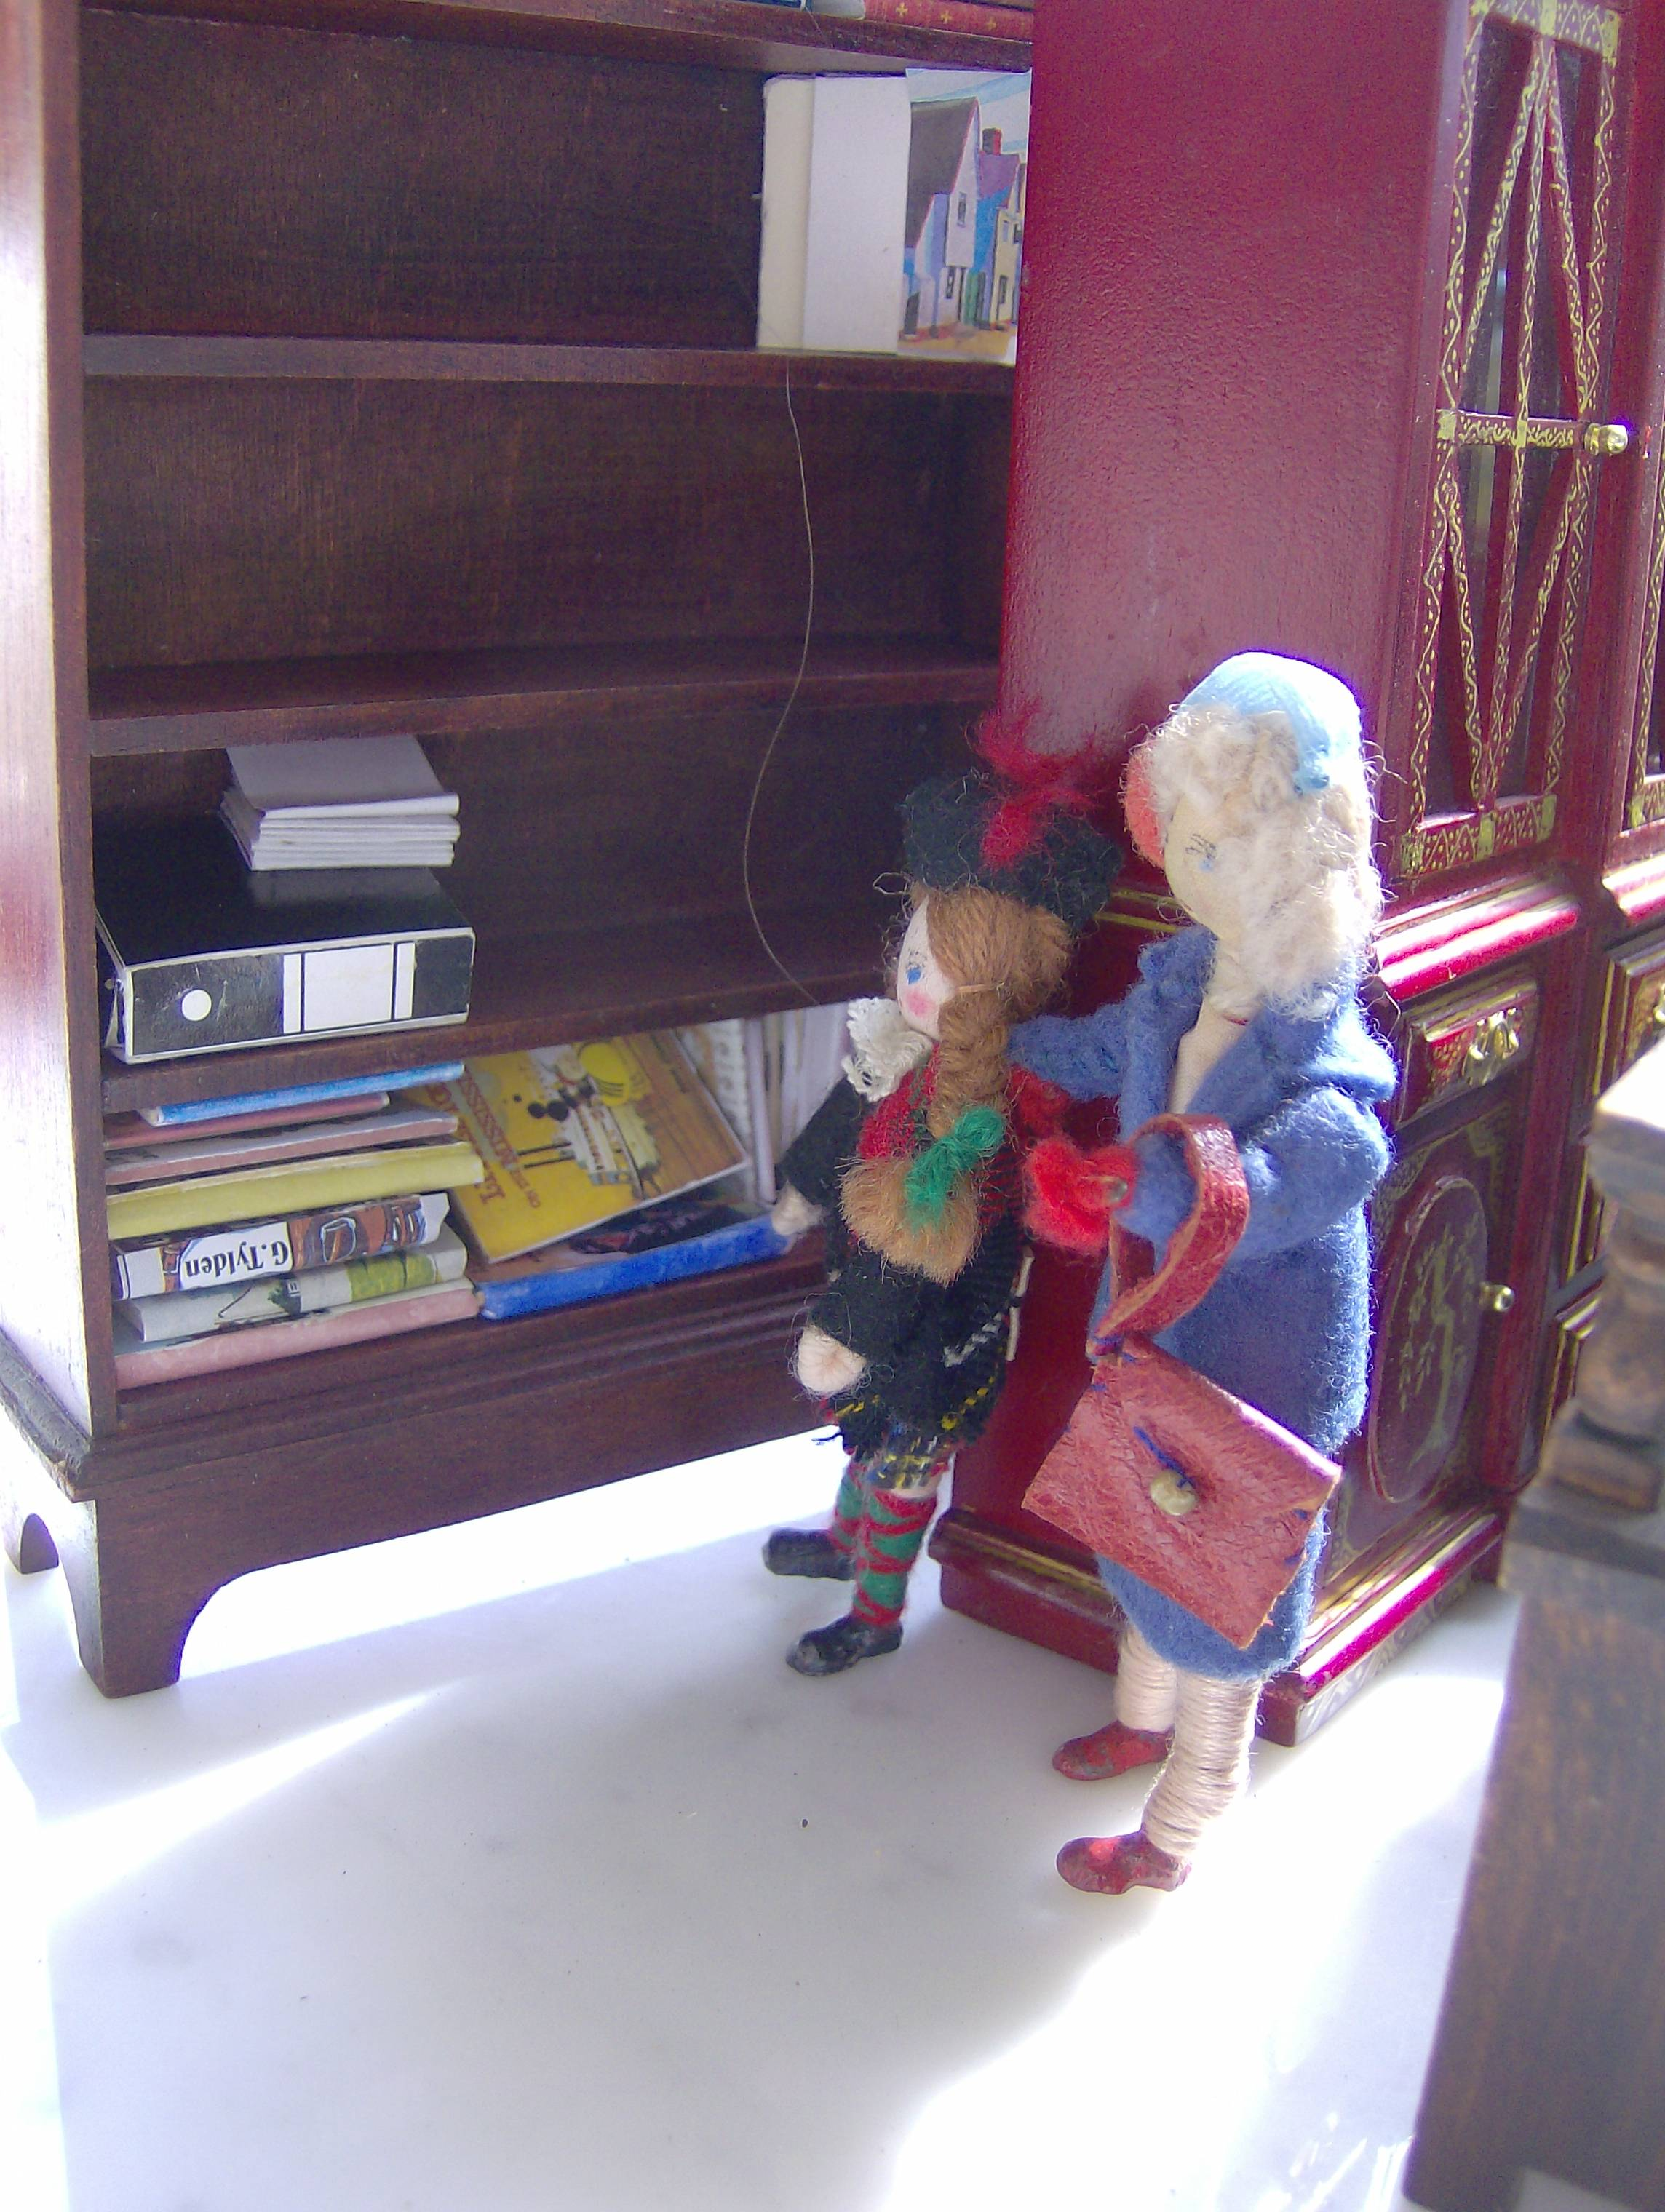 Mrs. McDonald and her little daughter Minnie, were hoping to find some interesting old books.